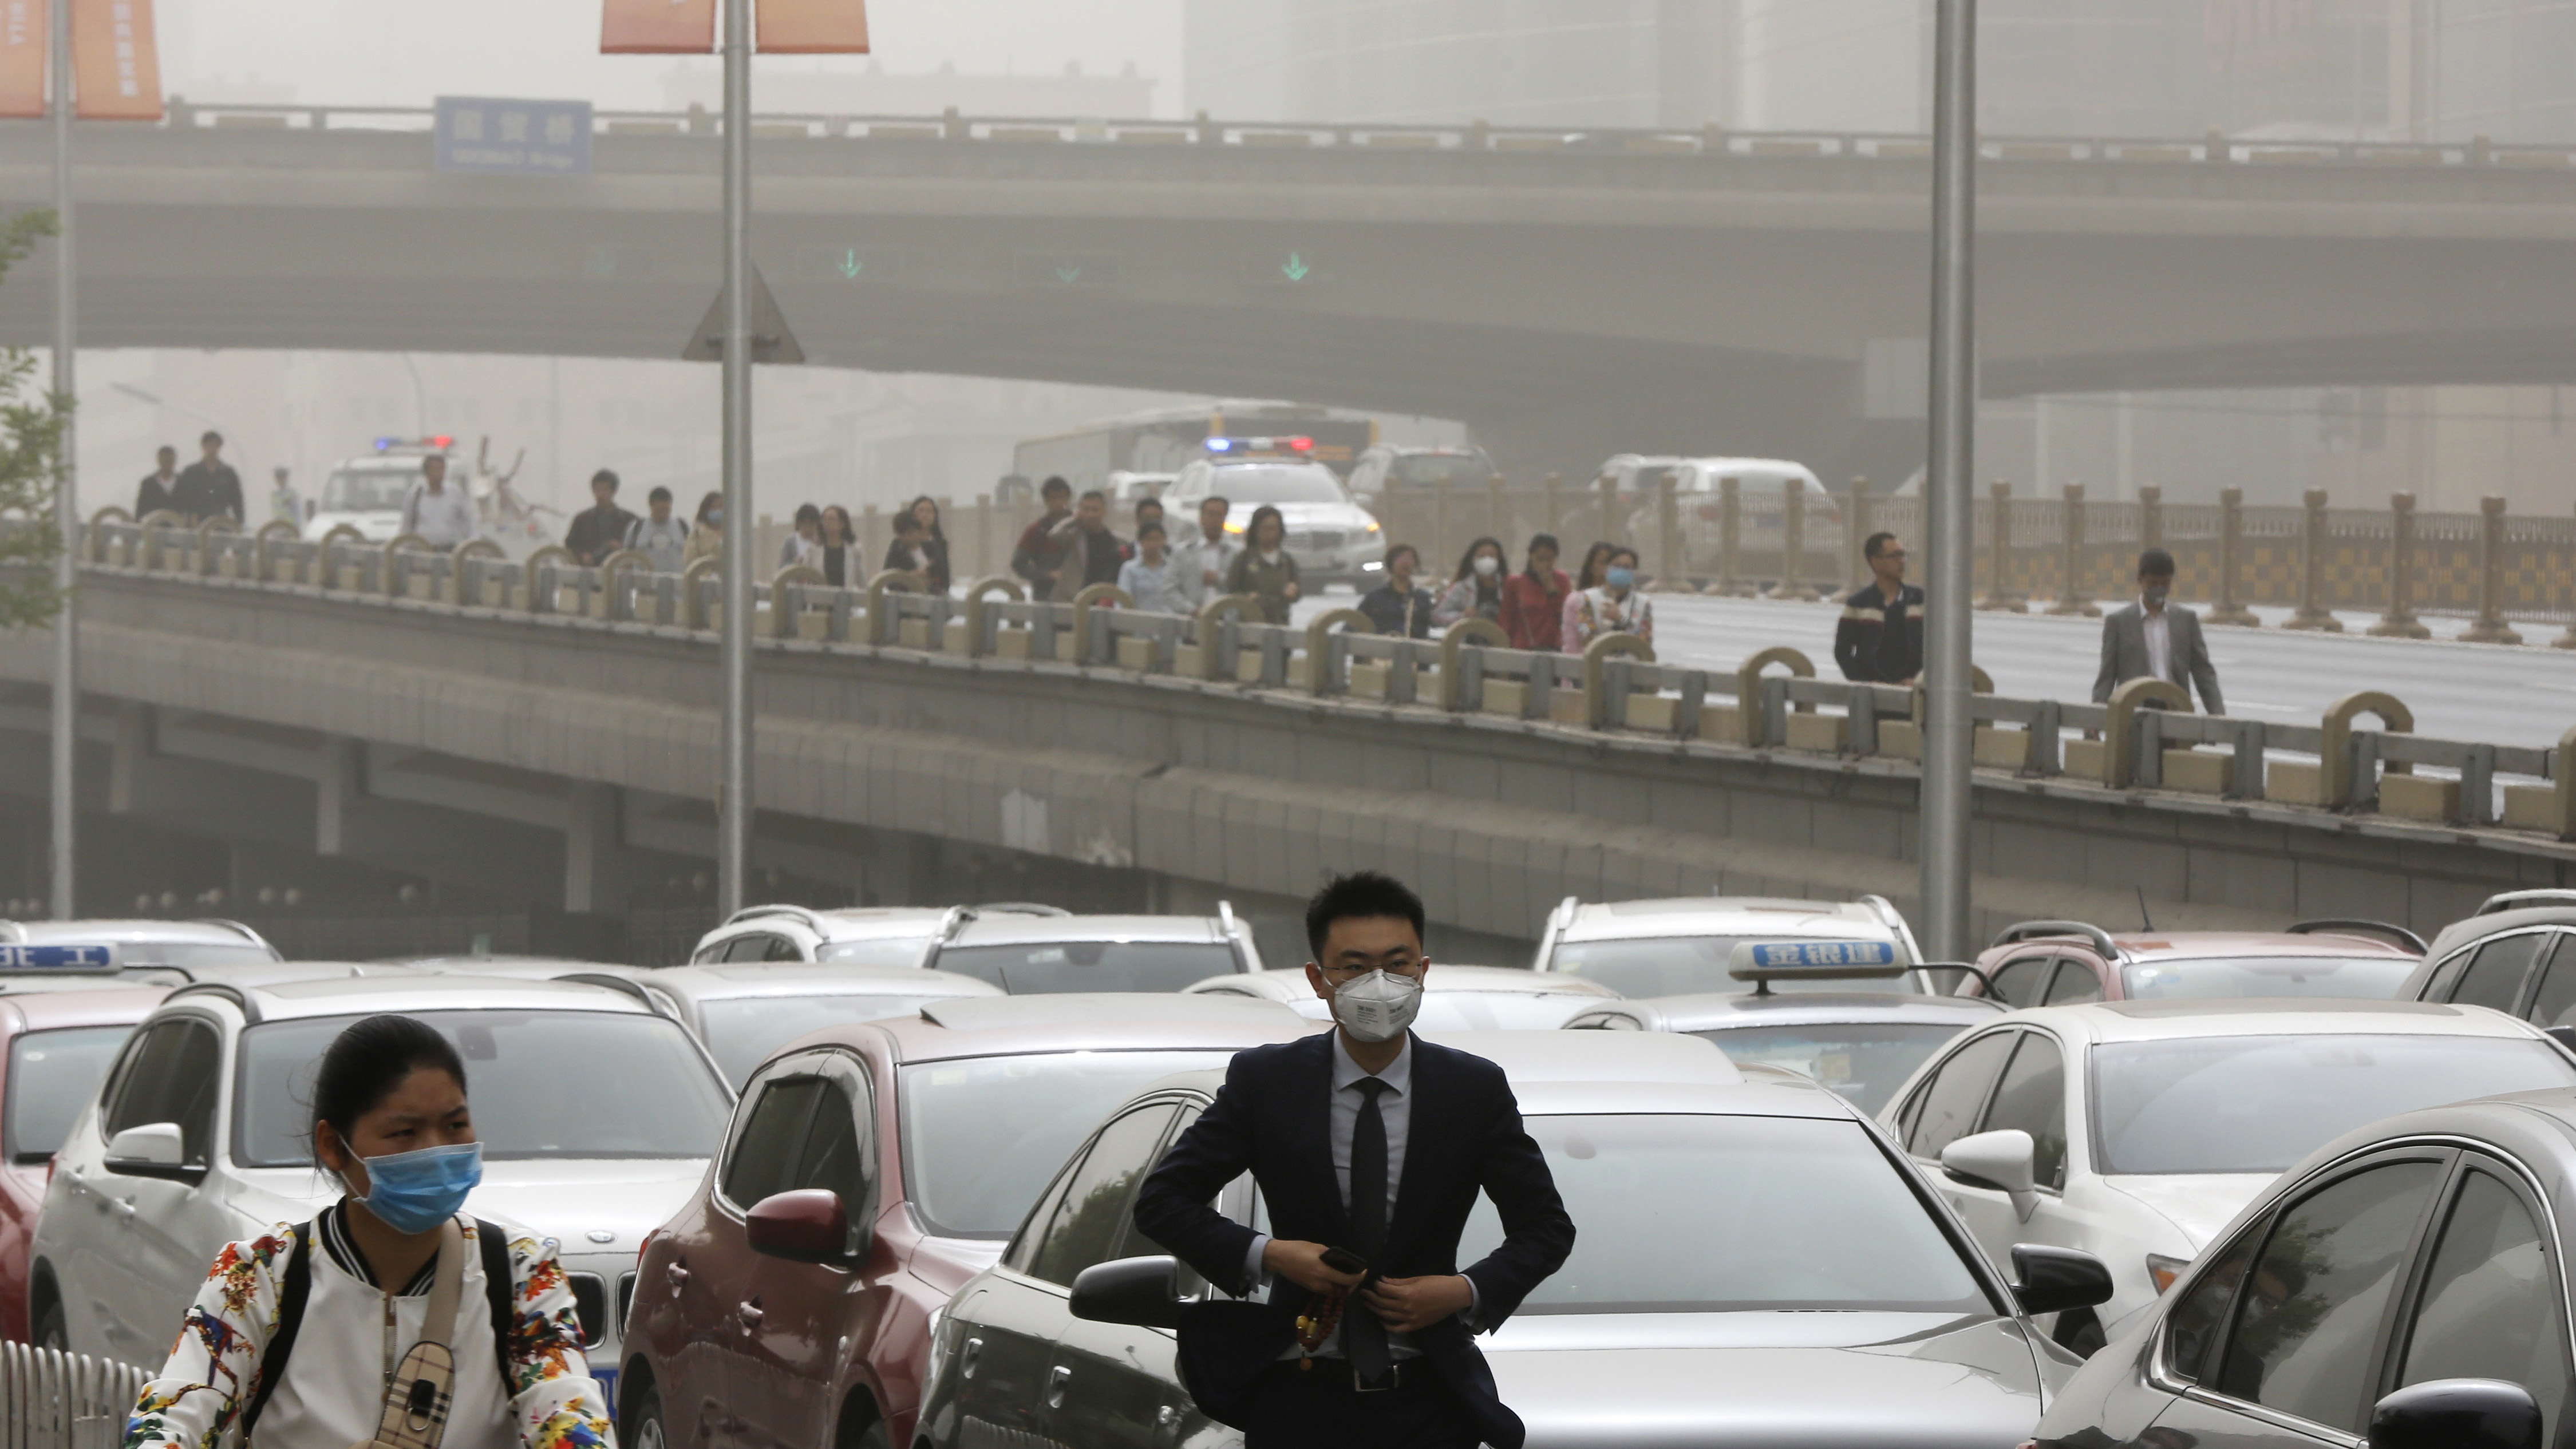 People wearing face masks walk past cars clogged with heavy traffic on a road as Beijing is hit by polluted air and sandstorm Thursday, May 4, 2017. Authorities in Beijing issued a blue alert on air pollution as sandstorm swept through the Chinese capital city on Thursday morning. (AP Photo/Andy Wong)